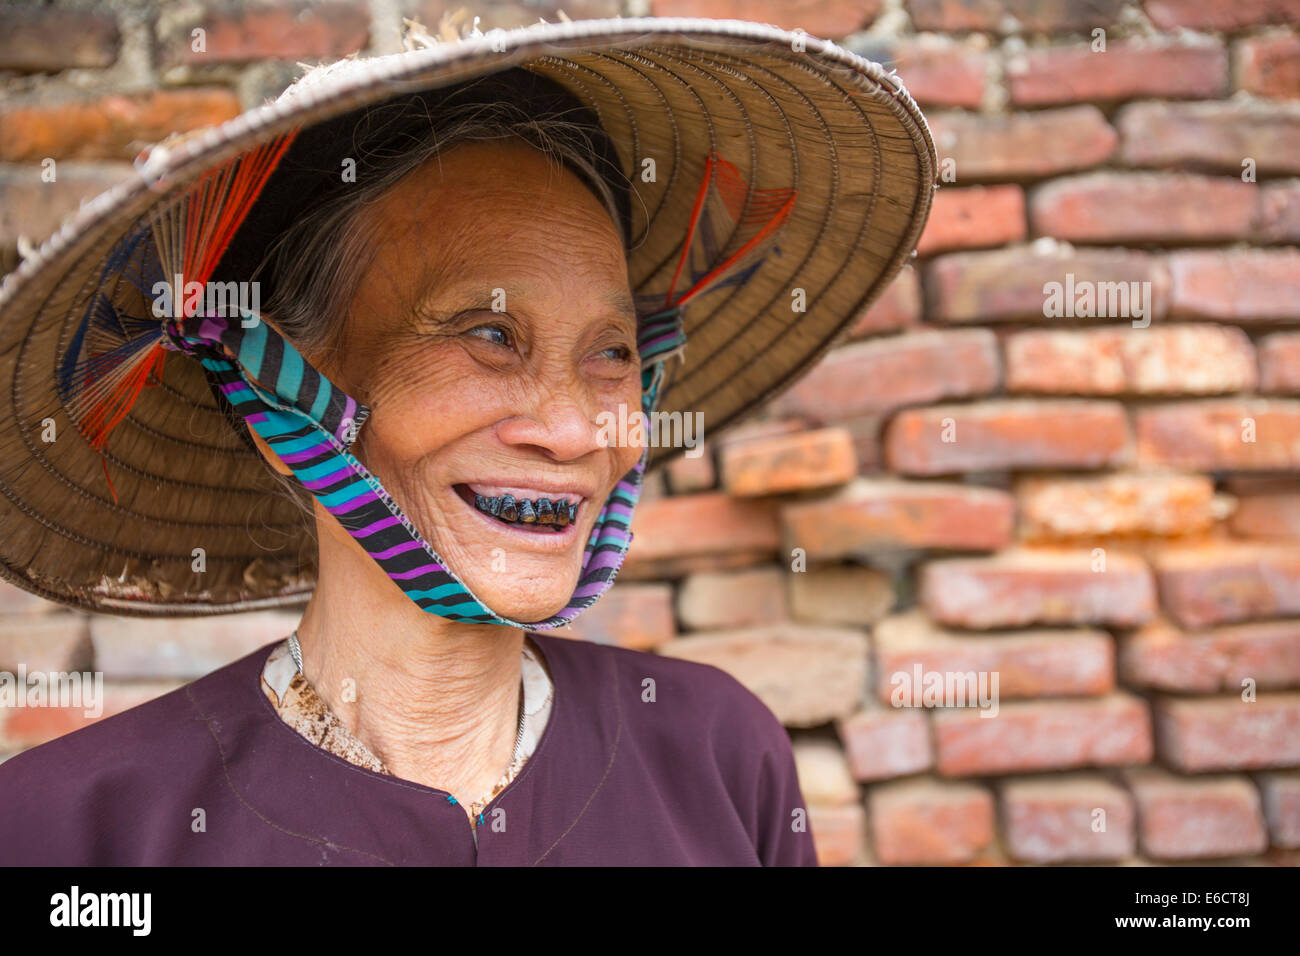 Vietnamese woman with black teeth from chewing betel nuts in Hanoi Long Khe village - Stock Image